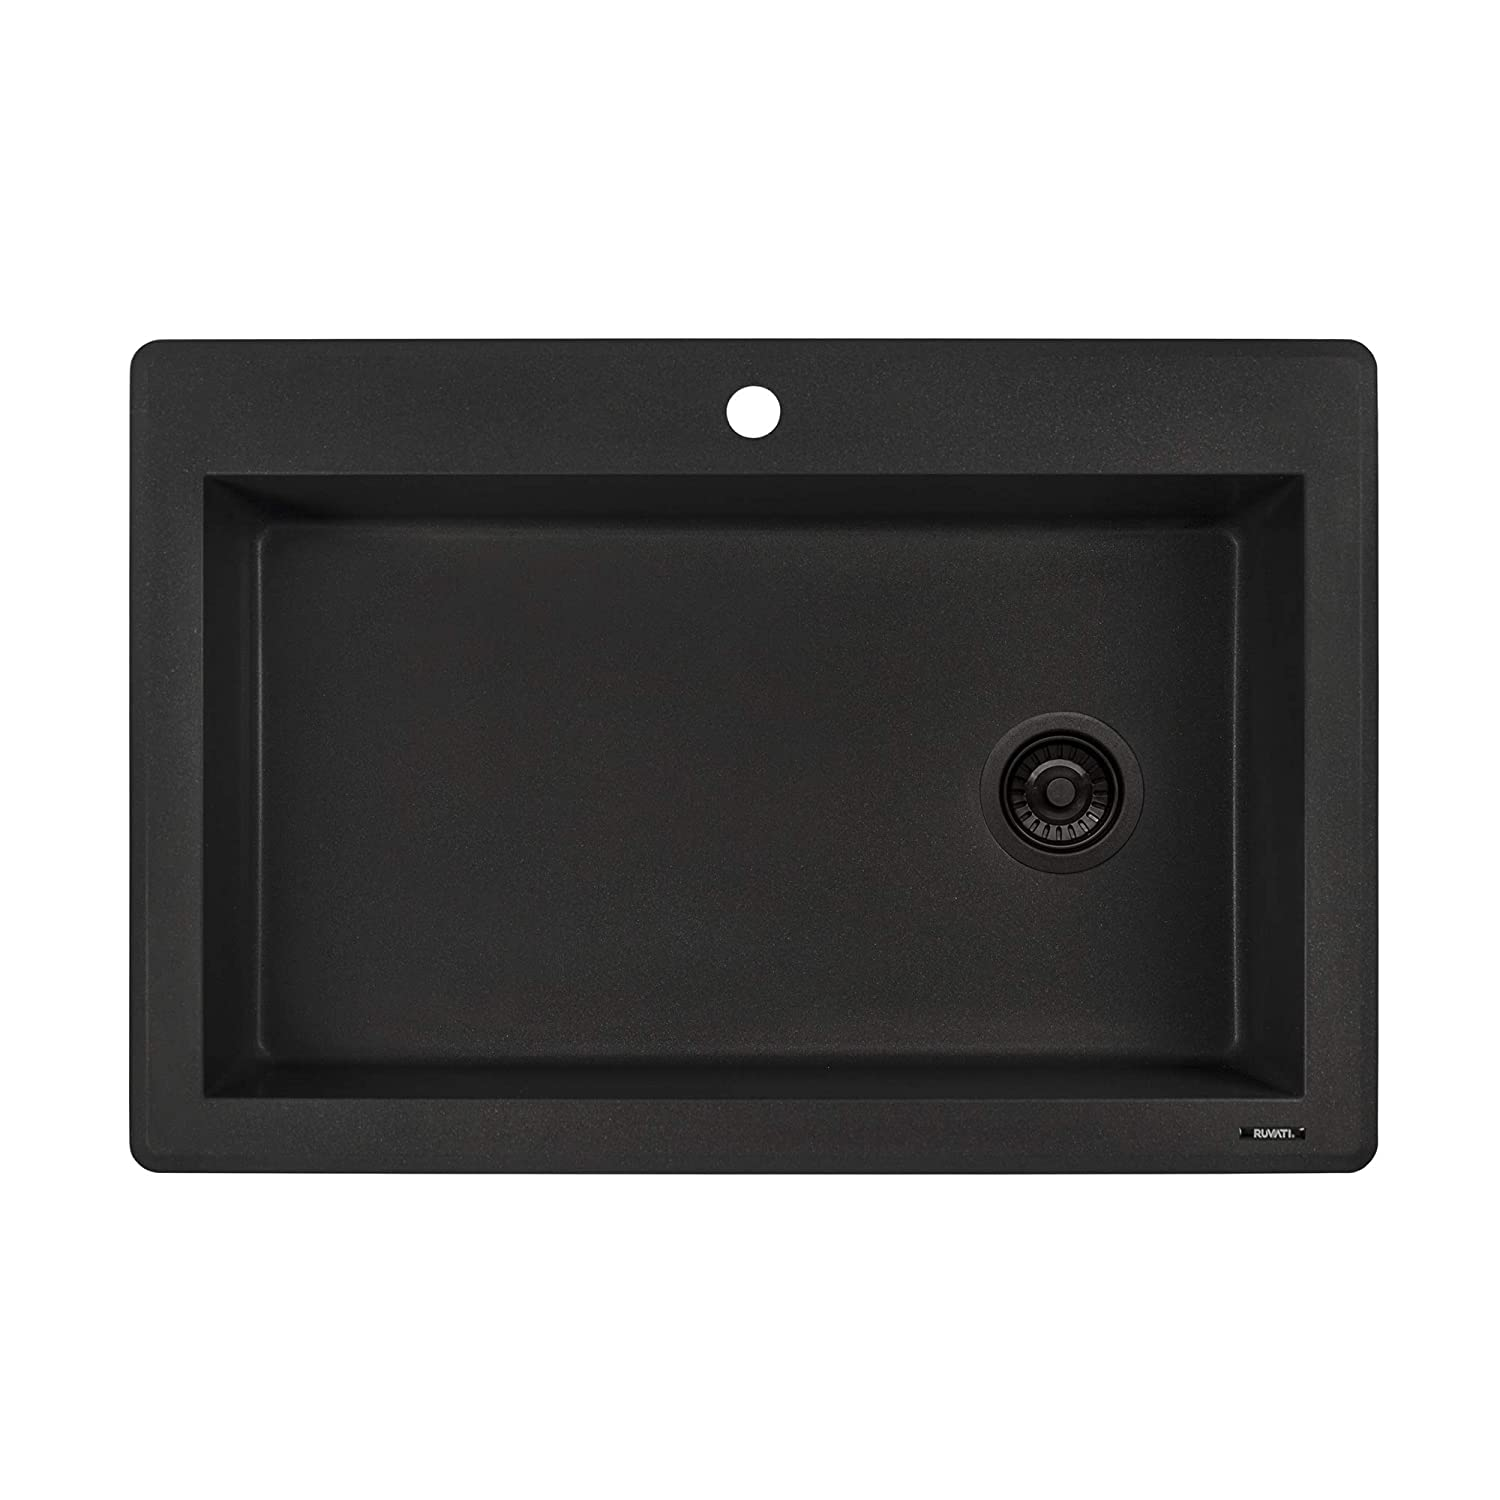 Ruvati 33 x 22 inch Dual-Mount Granite Composite Single Bowl Kitchen Sink – Black Galaxy – RVG1033GX